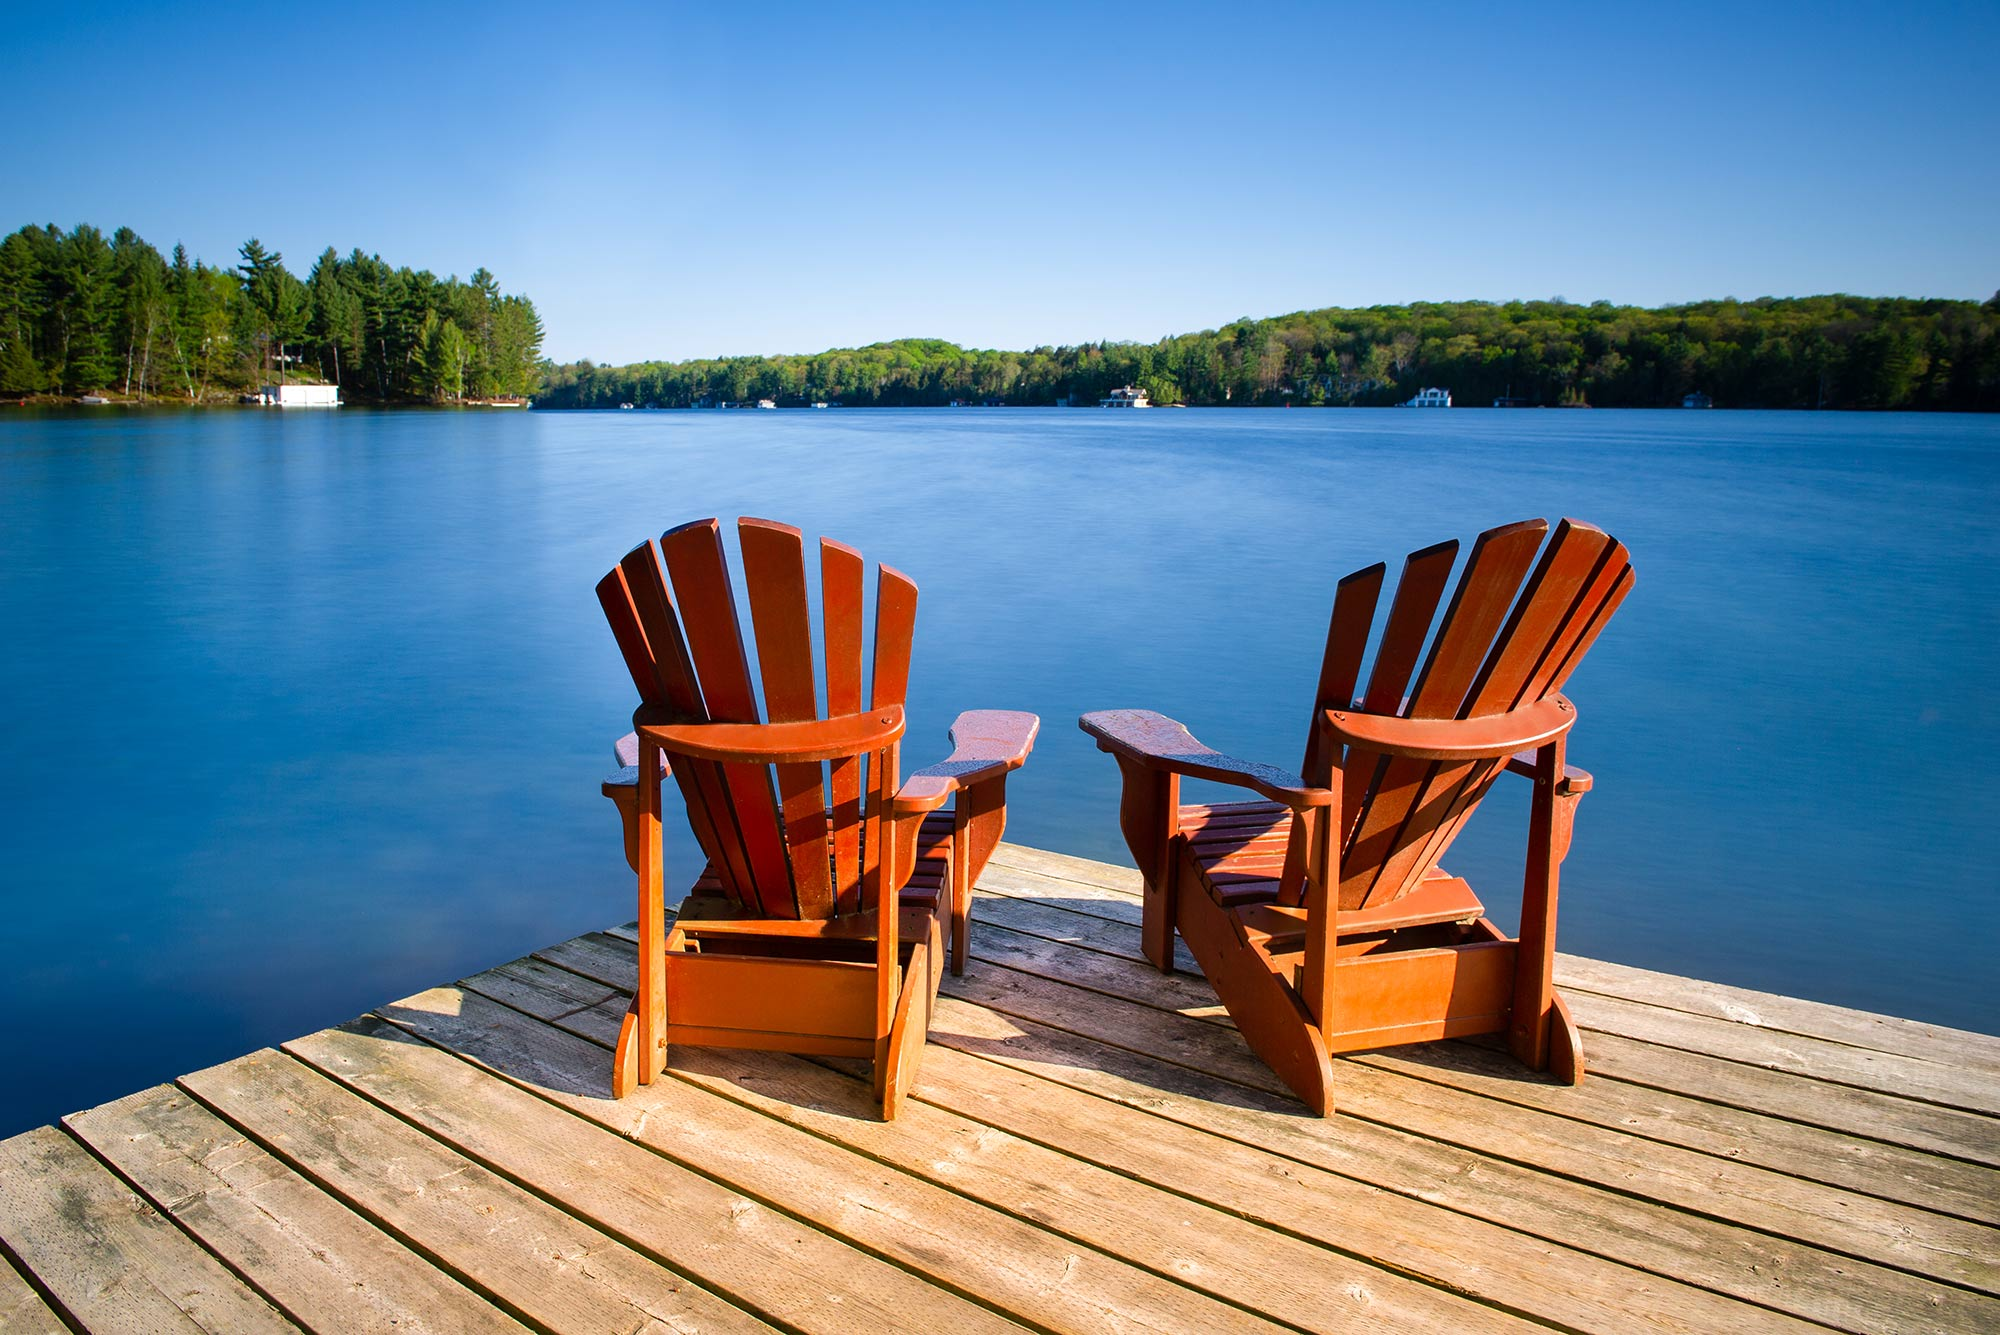 Photo of Adirondack chairs on a wooden dock on a calm lake in Muskoka, Ontario Canada. Cottages nestled between trees are visible across the water.